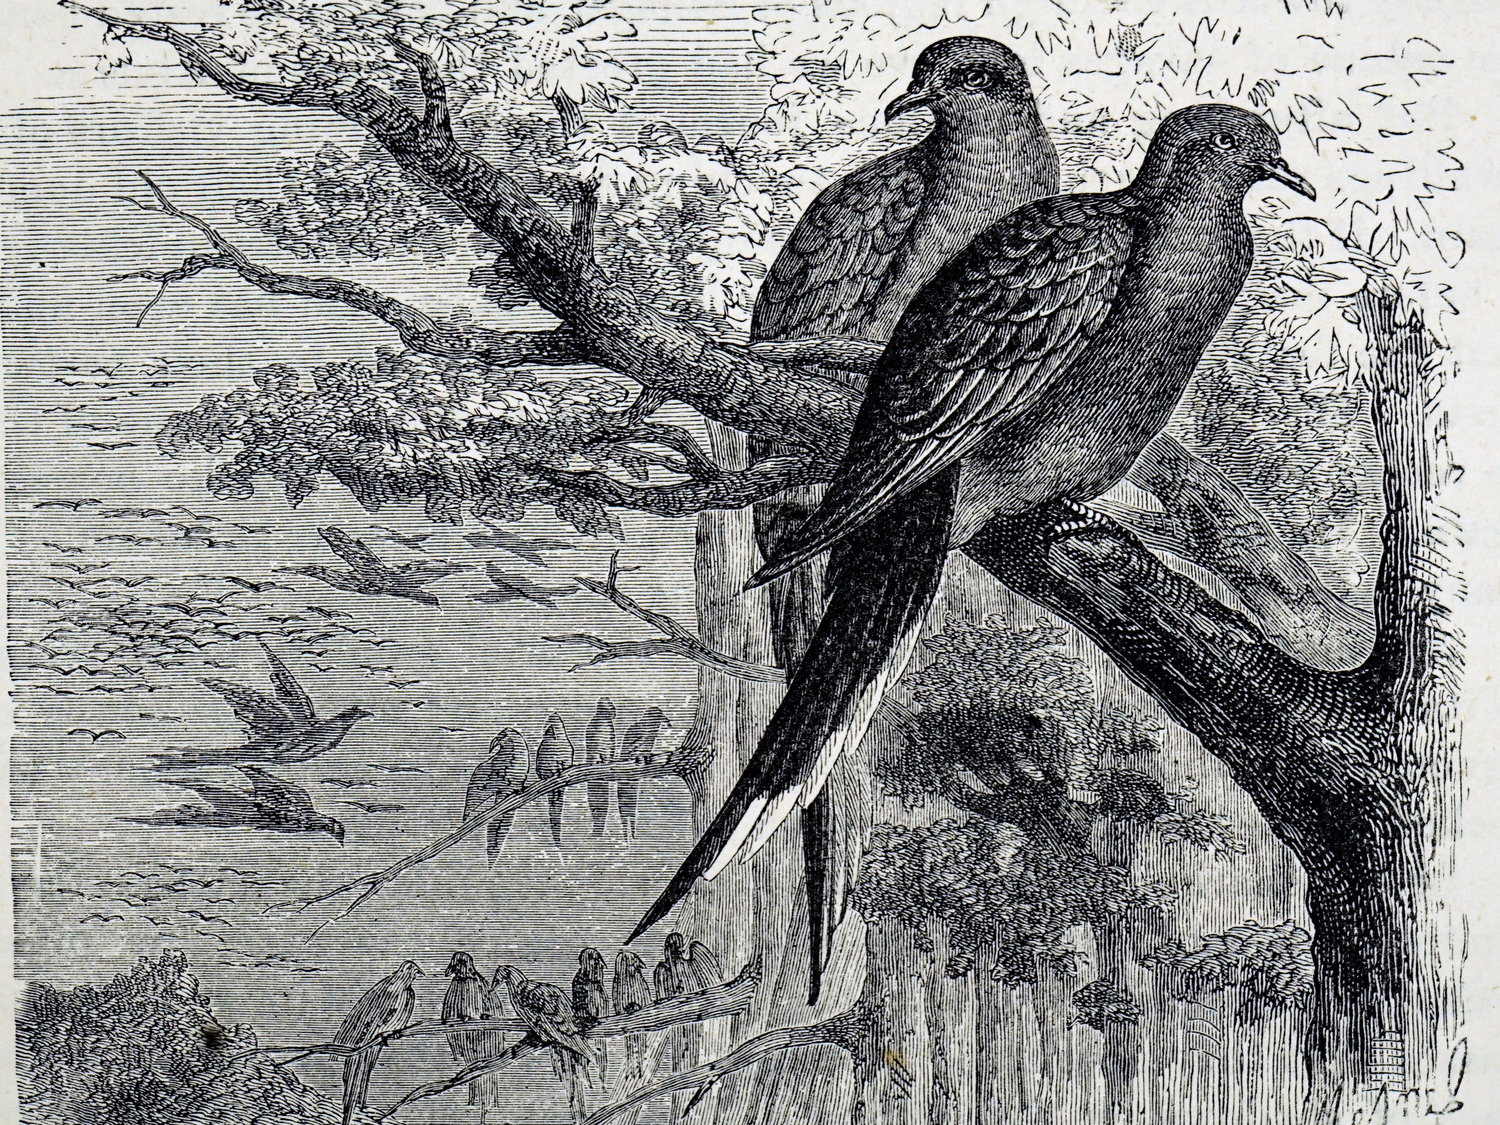 19th century engraving of pigeons